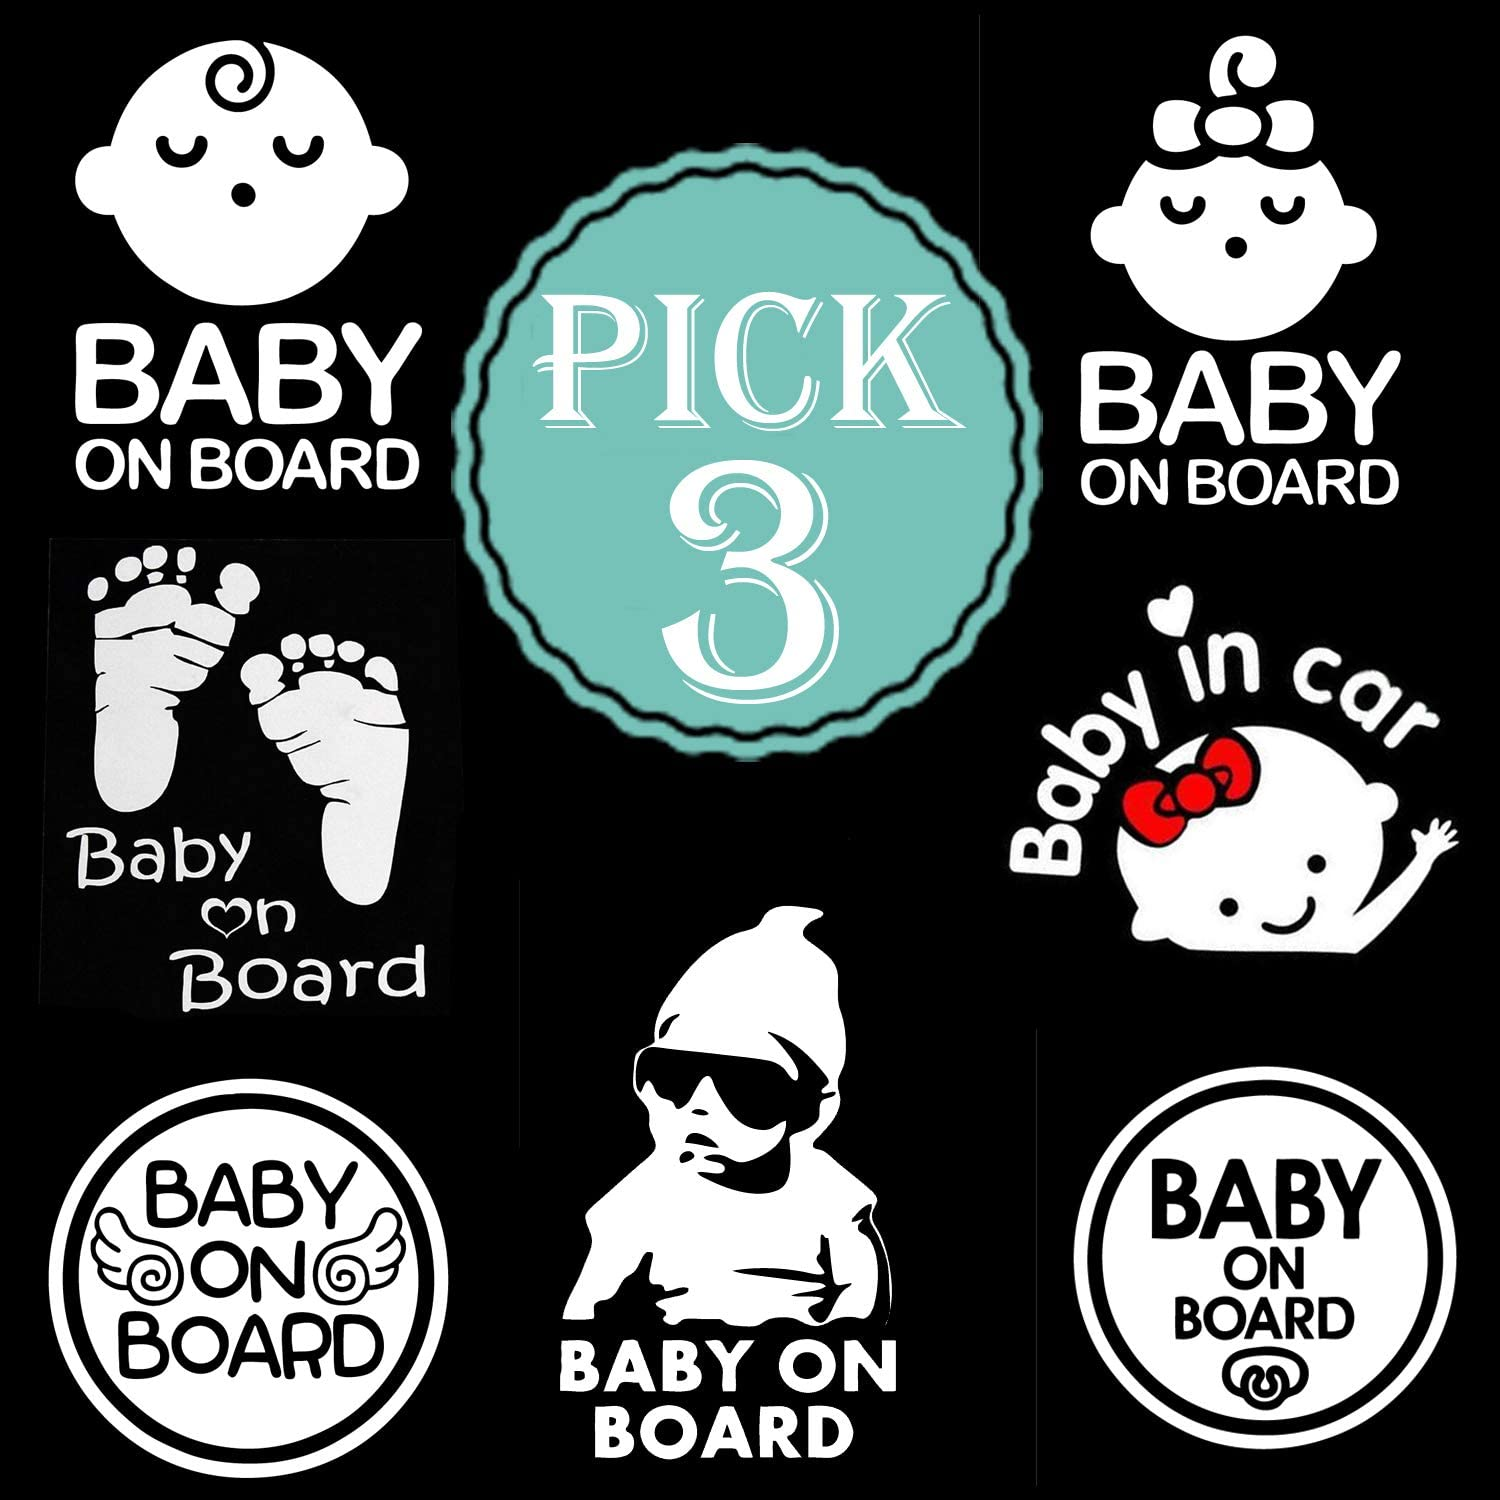 TOTOMO Baby on Board Sticker Seelping Baby Boy ALI-026 - Safety Caution Decal Sign Stickers for Cars Windows Bumpers Set of 2